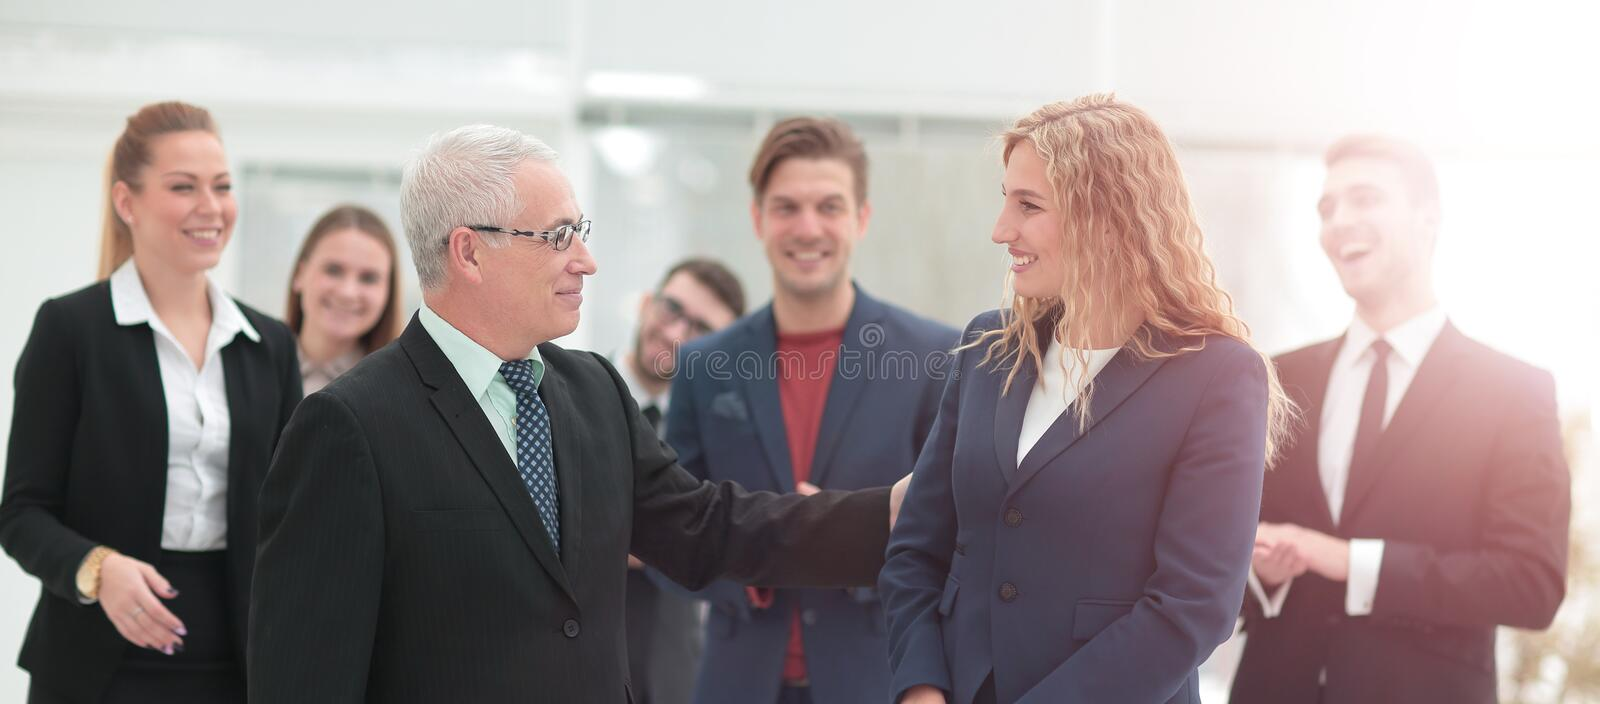 Group of happy colleagues communicating in office royalty free stock photos